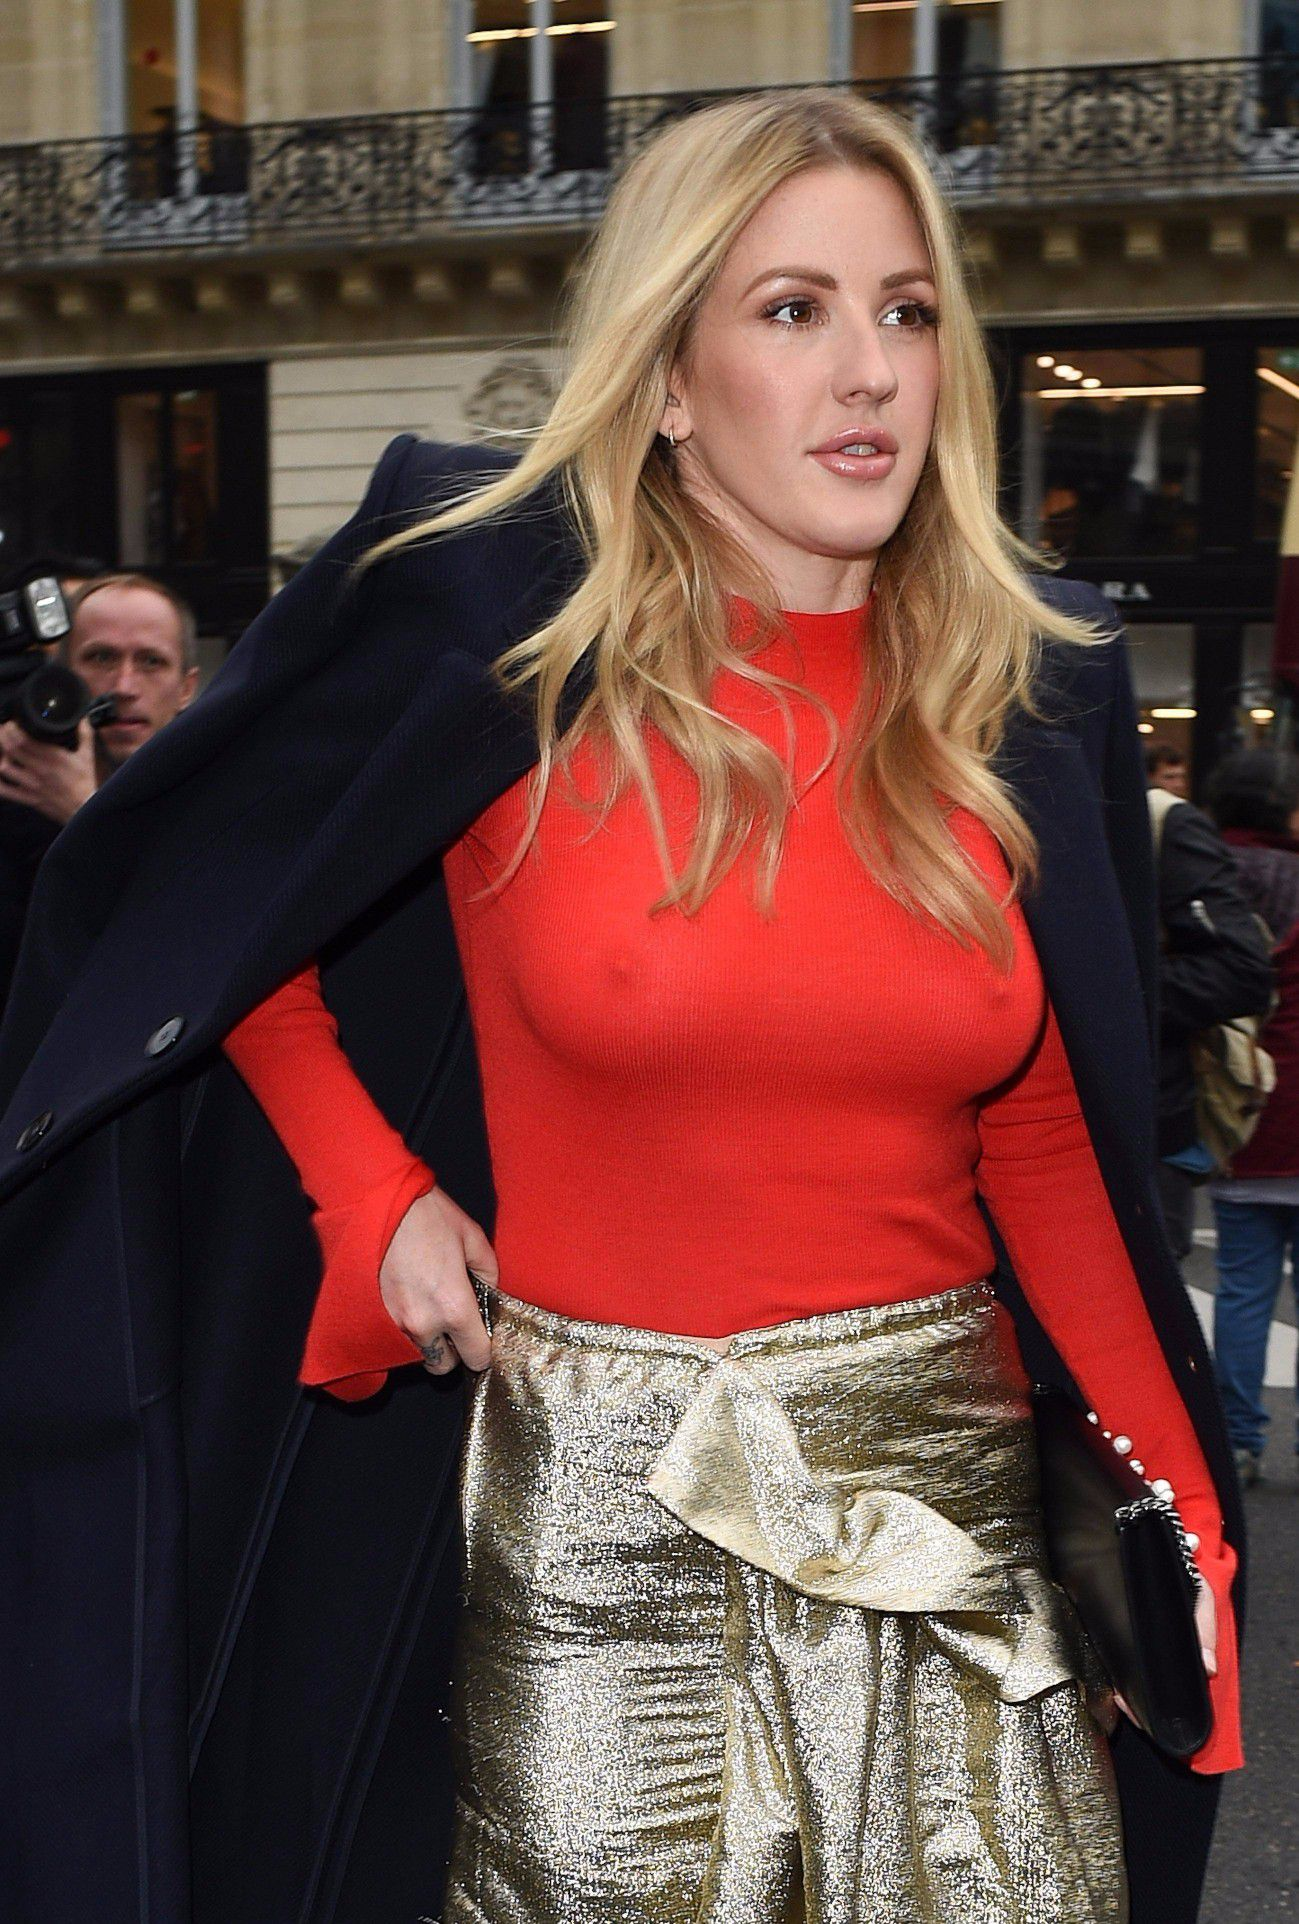 ellie-goulding-braless-in-see-thru-top-at-a-fashion-show-in-paris-2663